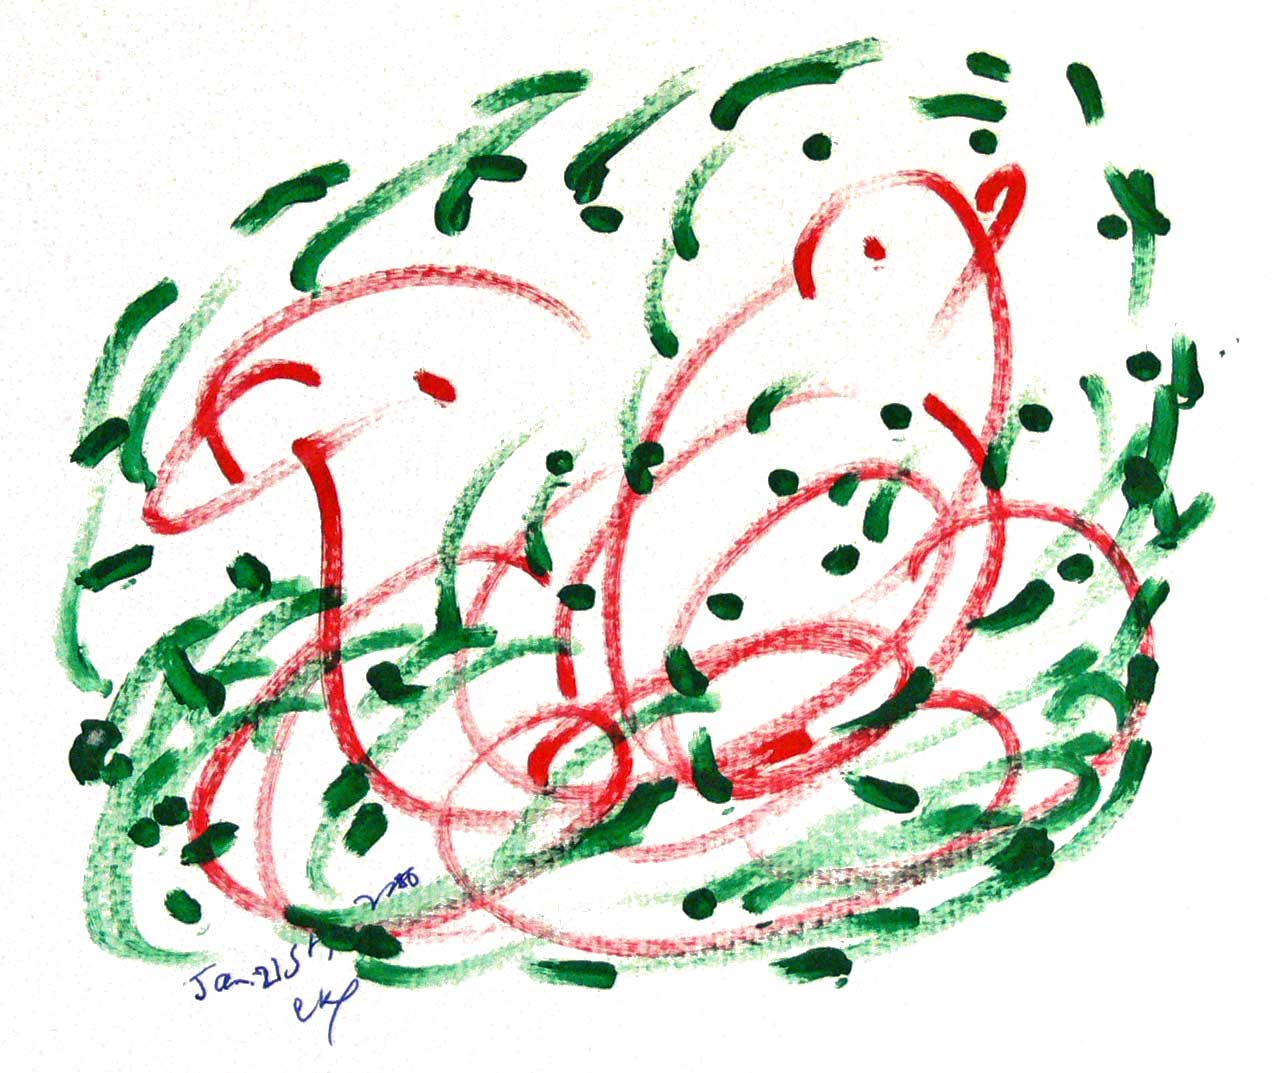 Bird-Drawing-by-Sri-Chinmoy-21-1-2006-2